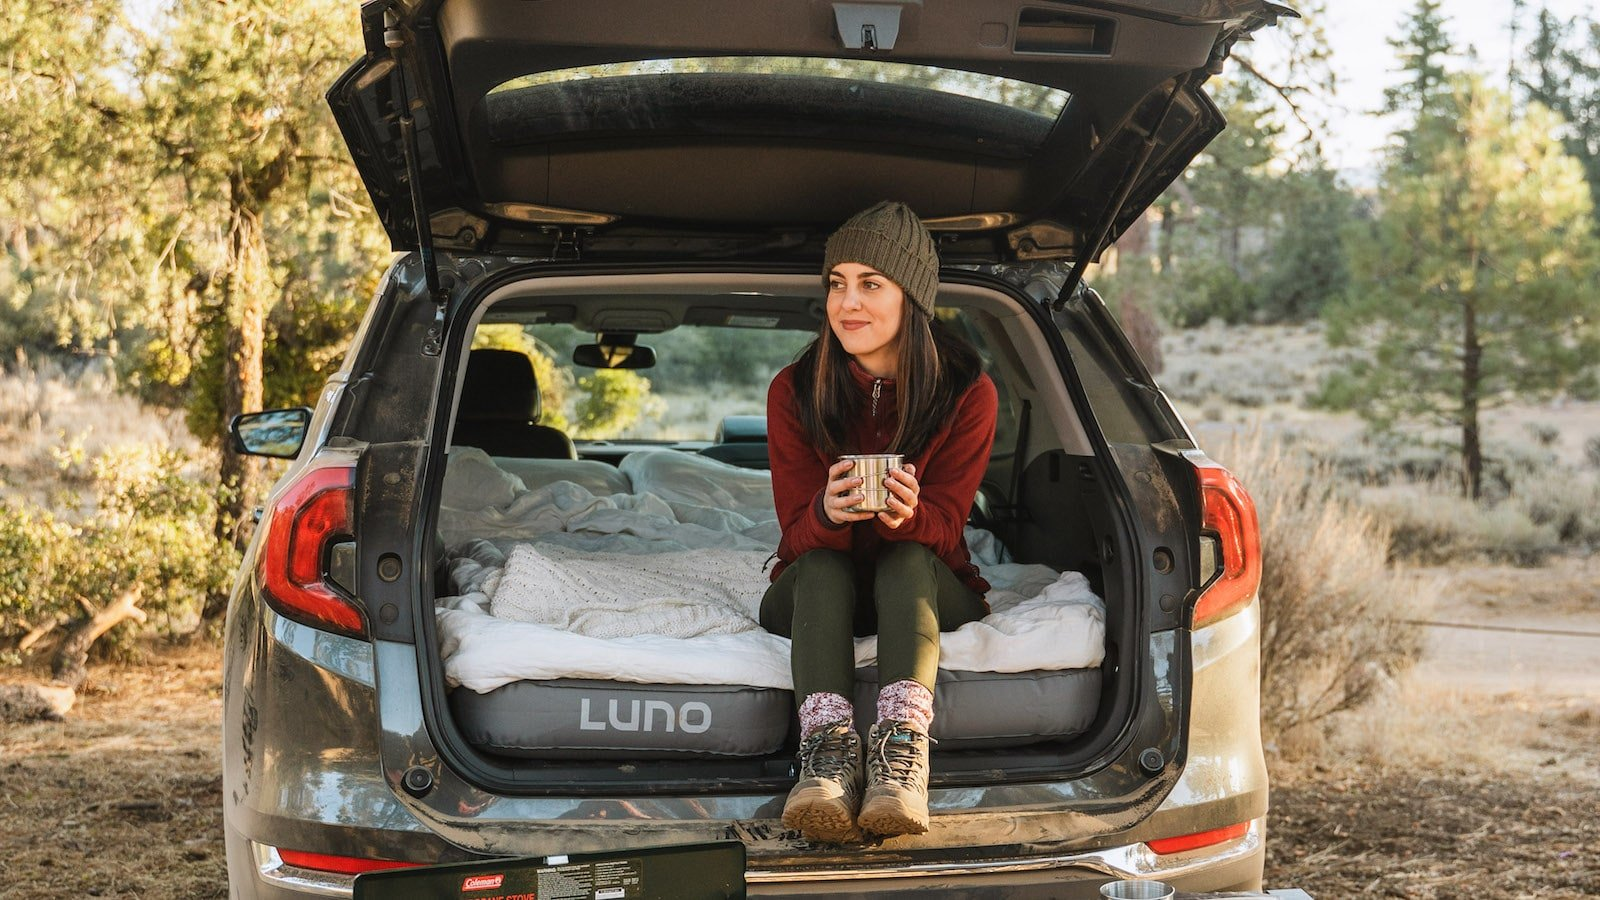 Luno Vehicle Air Mattress 2.0 is designed for car camping and accommodates two people